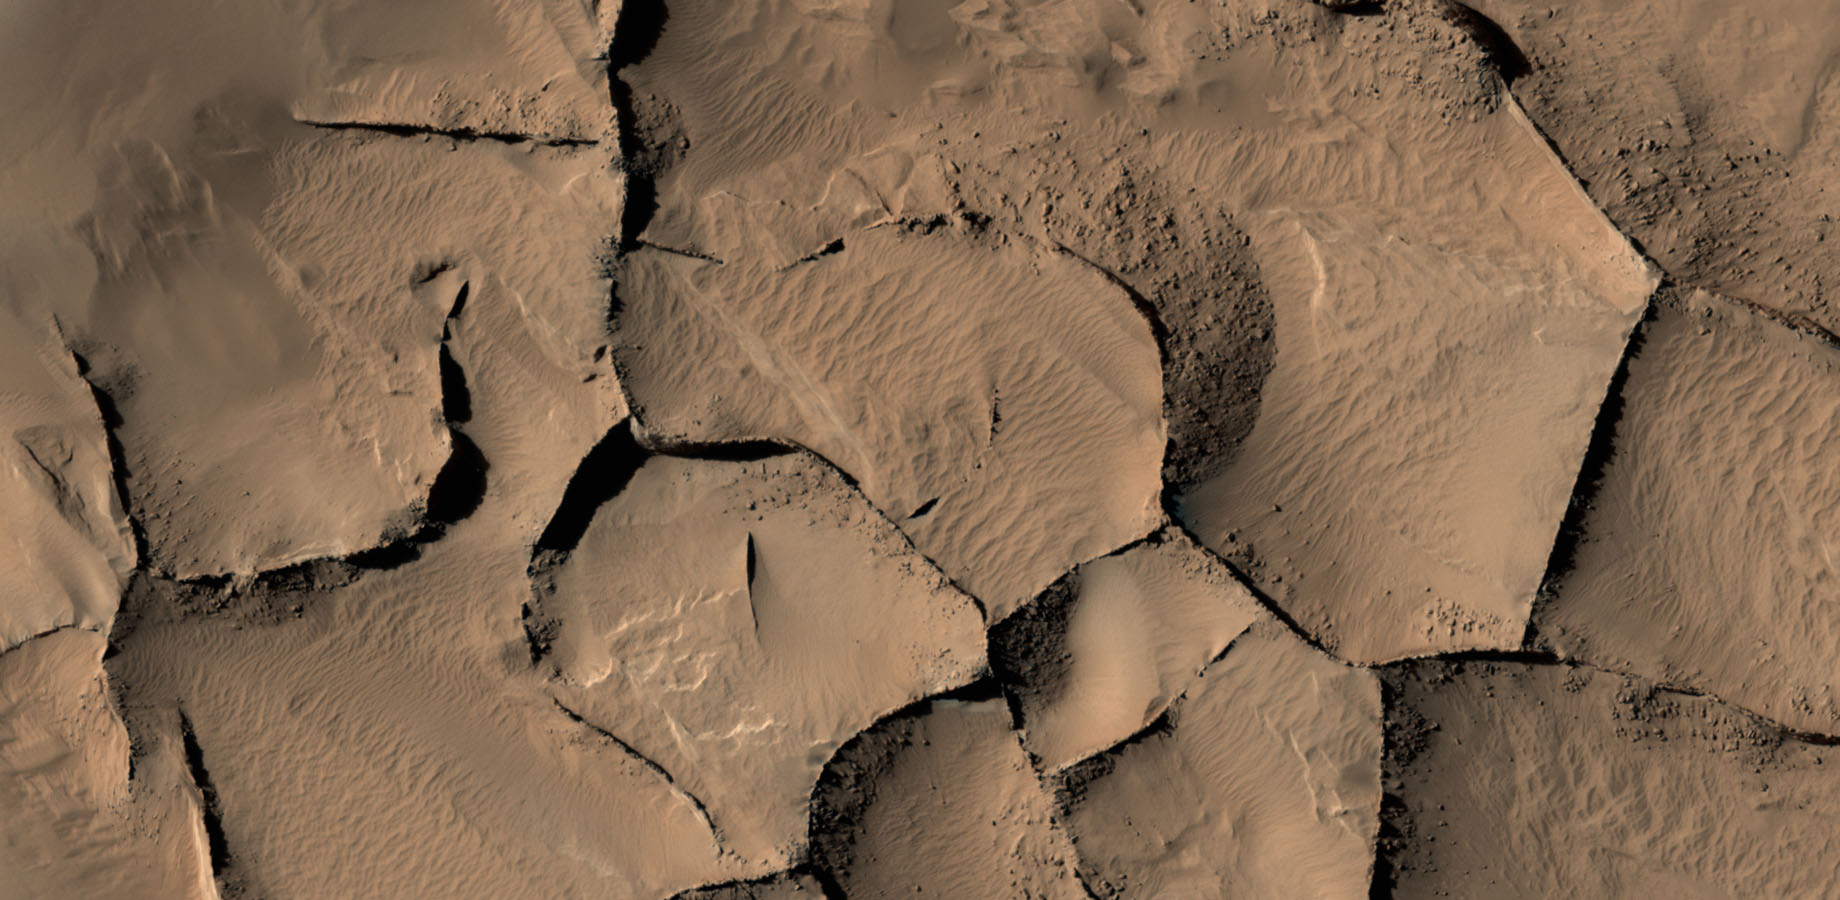 The dark lines are ridges, not valleys, on the desert surface of Mars.  Credit: Nasa / JPL-Caltech / University of Arizona